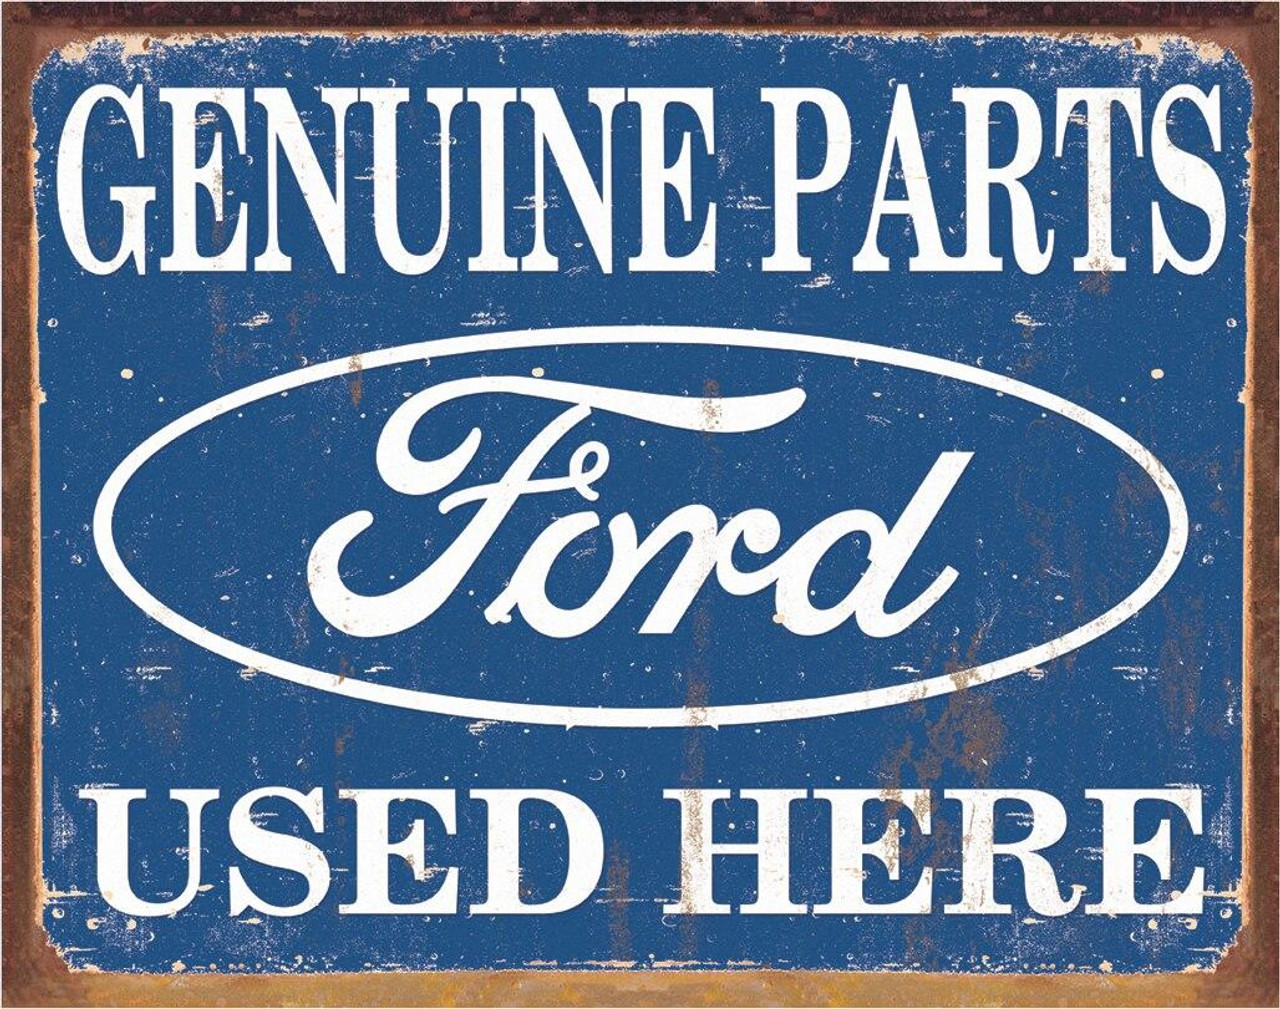 Ford Ford Parts Used Here